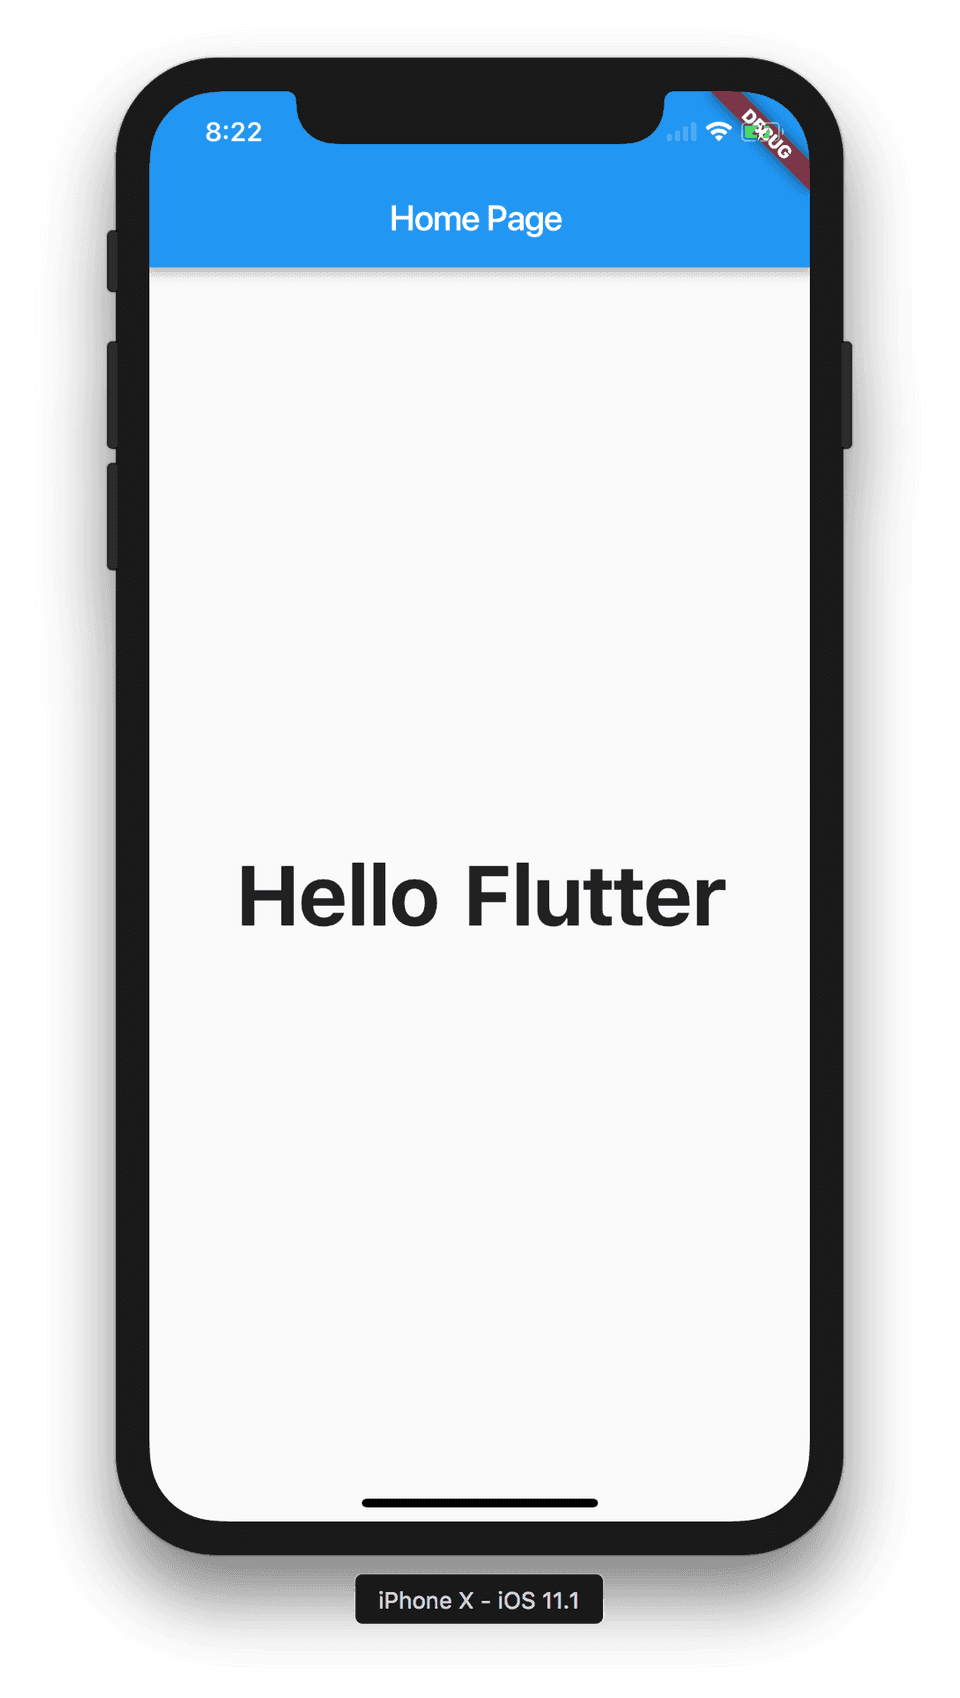 Flutter application with navigation bar and body